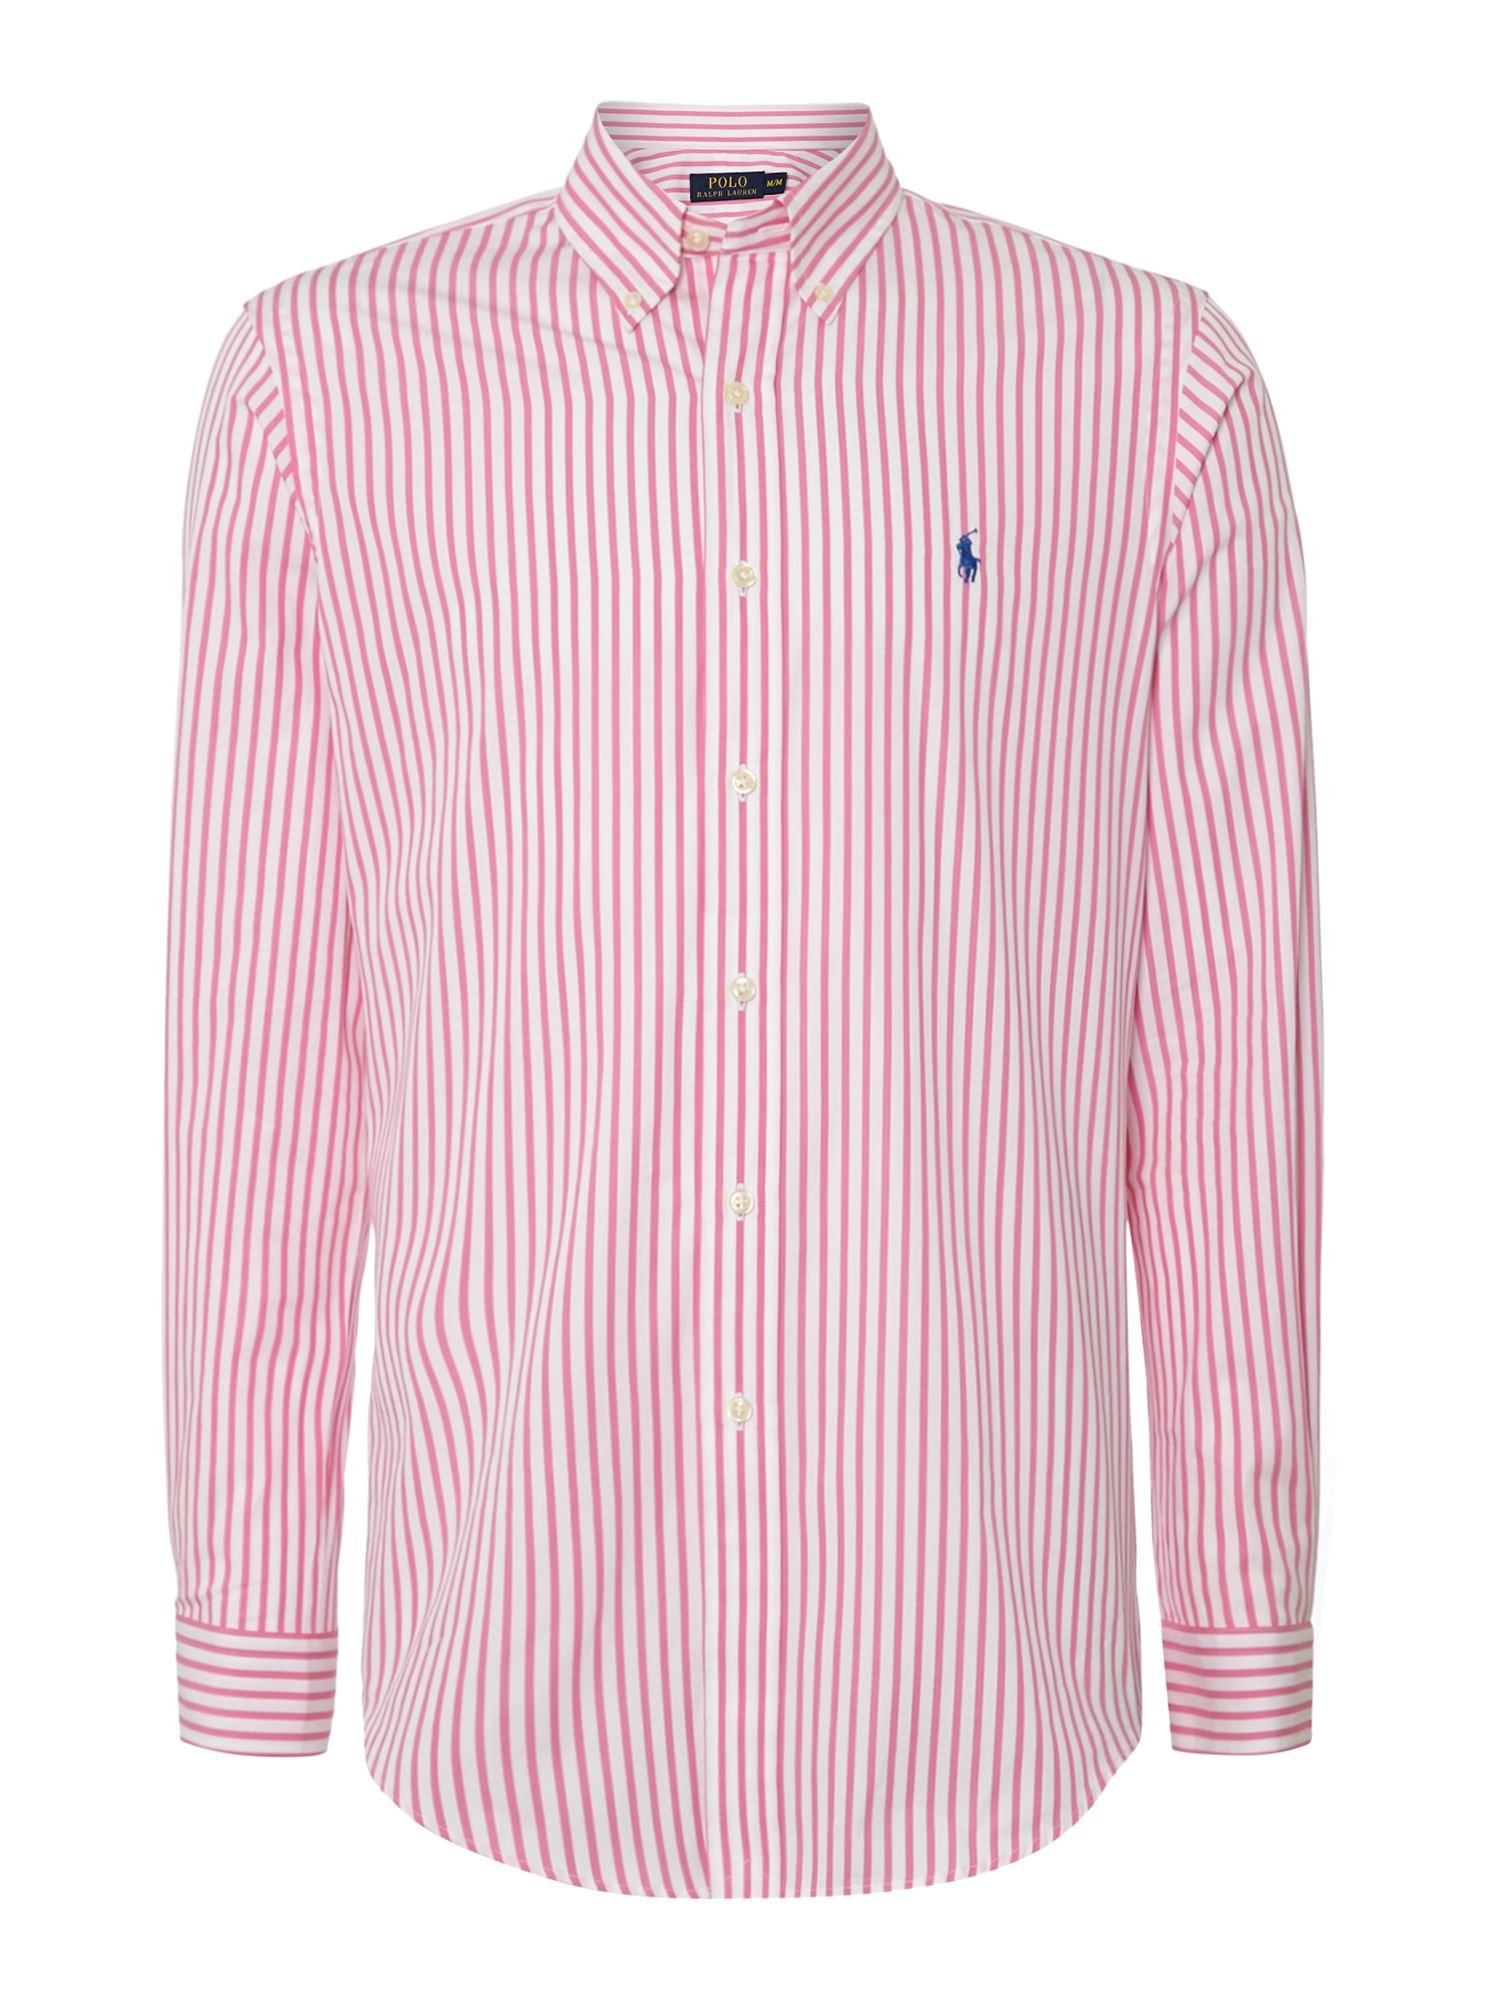 Polo ralph lauren bengal stripe custom fit shirt in pink for Pink and white ralph lauren shirt